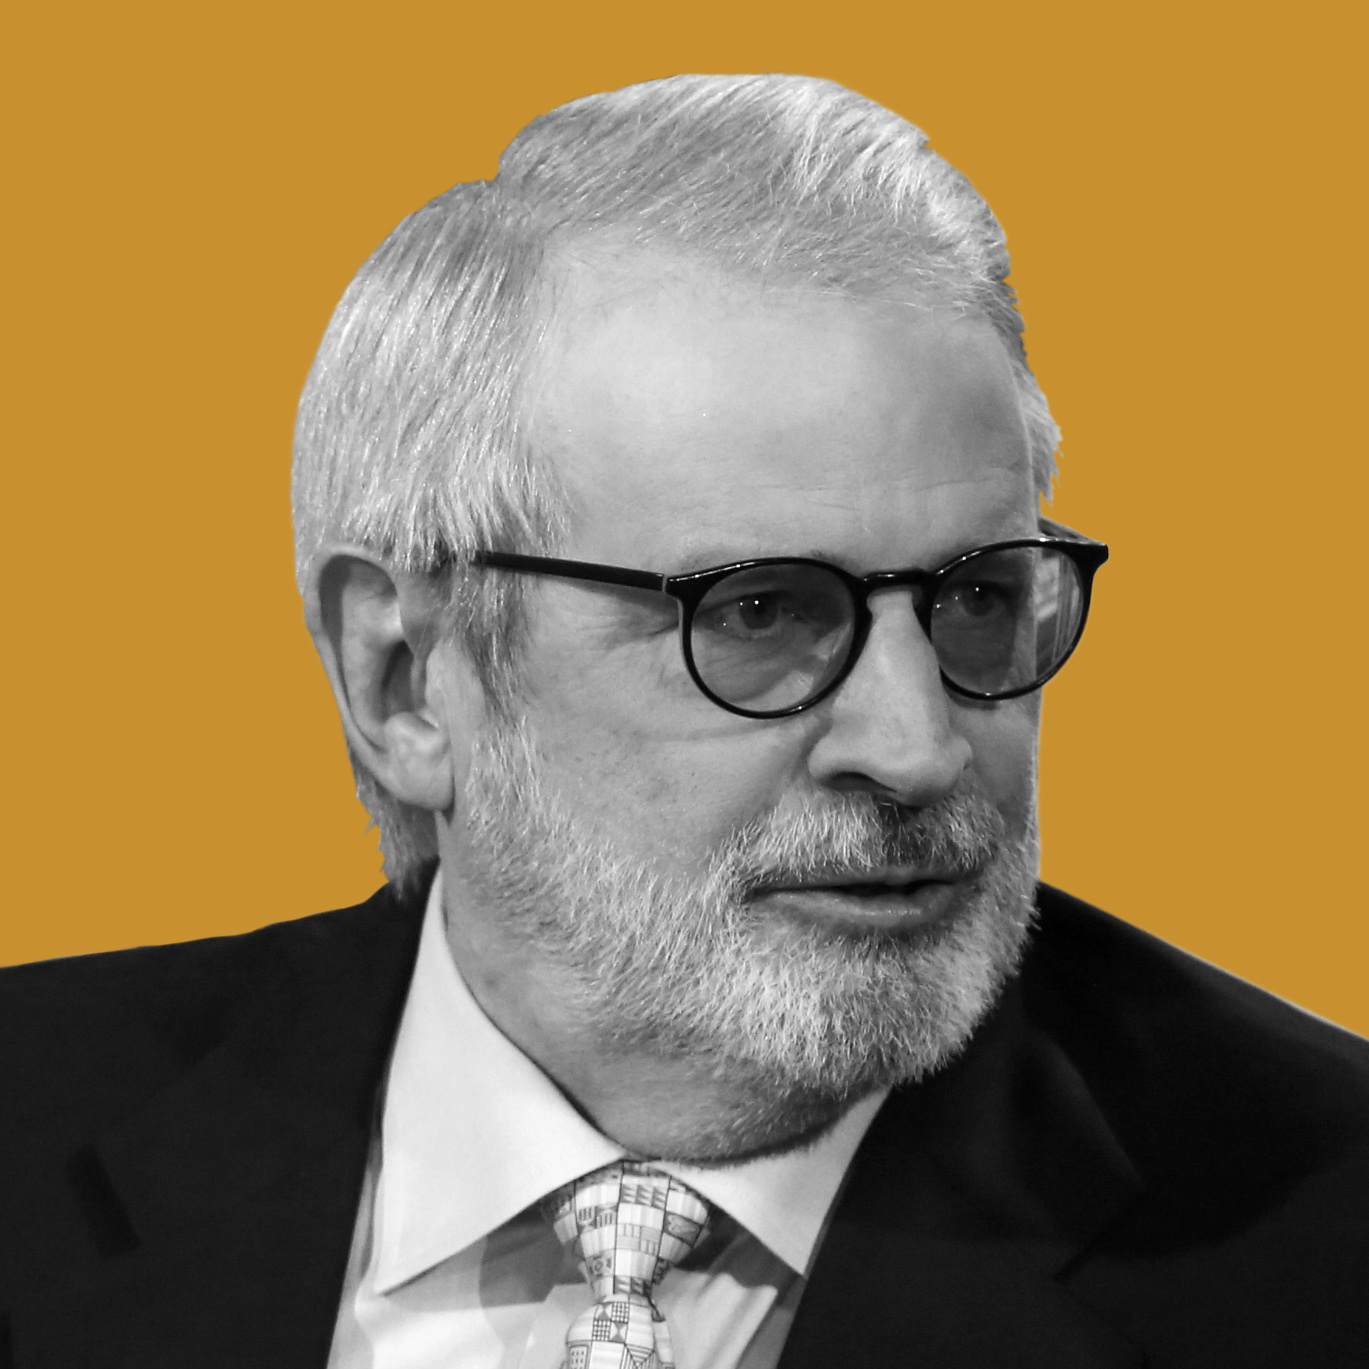 Former U.S. Budget Director David Stockman Interview